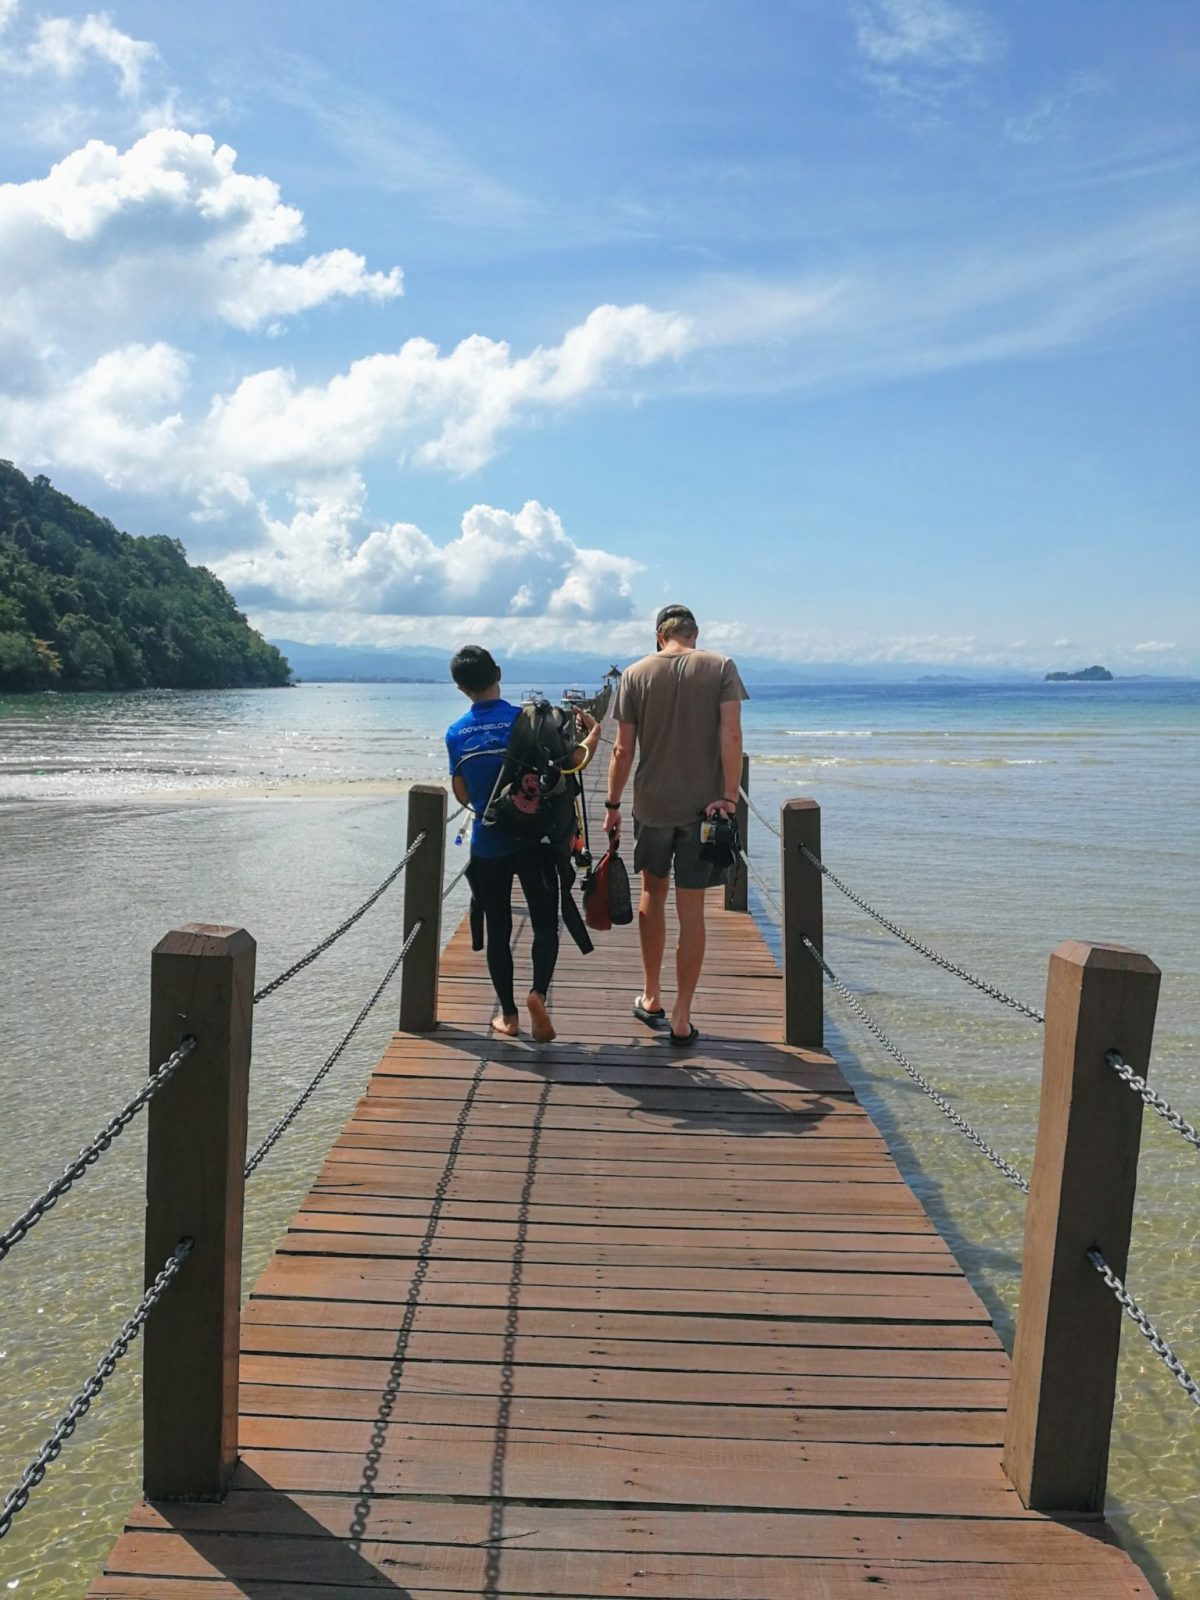 Borneo - Diving - A Lovely Planet